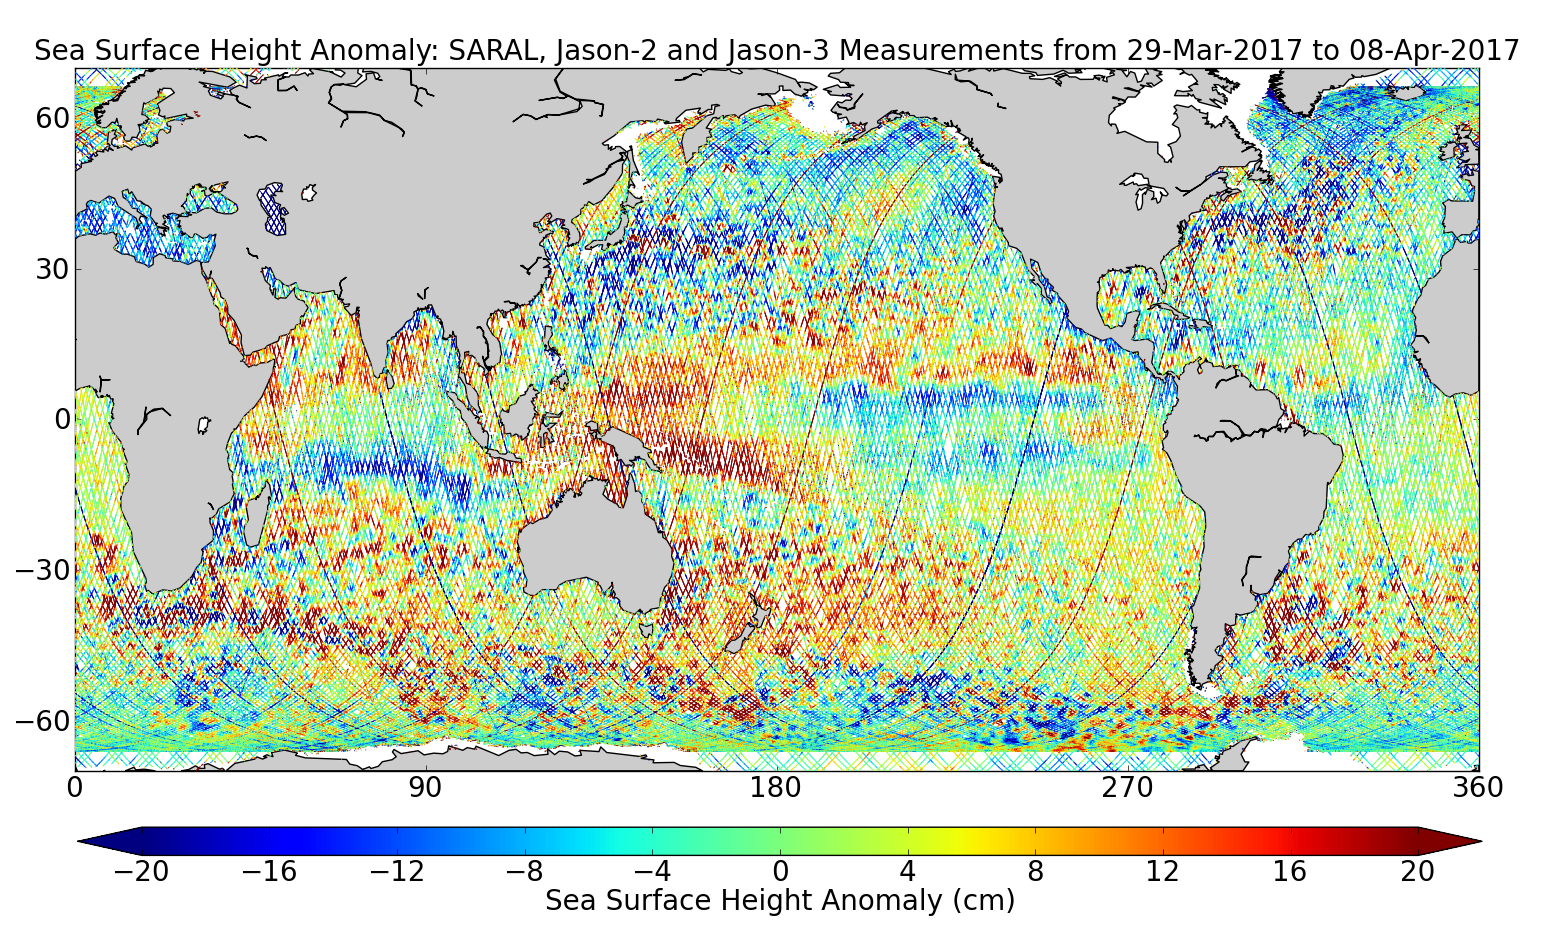 Sea Surface Height Anomaly: SARAL, Jason-2 and Jason-3 Measurements from 29-Mar-2017 to 08-Apr-2017